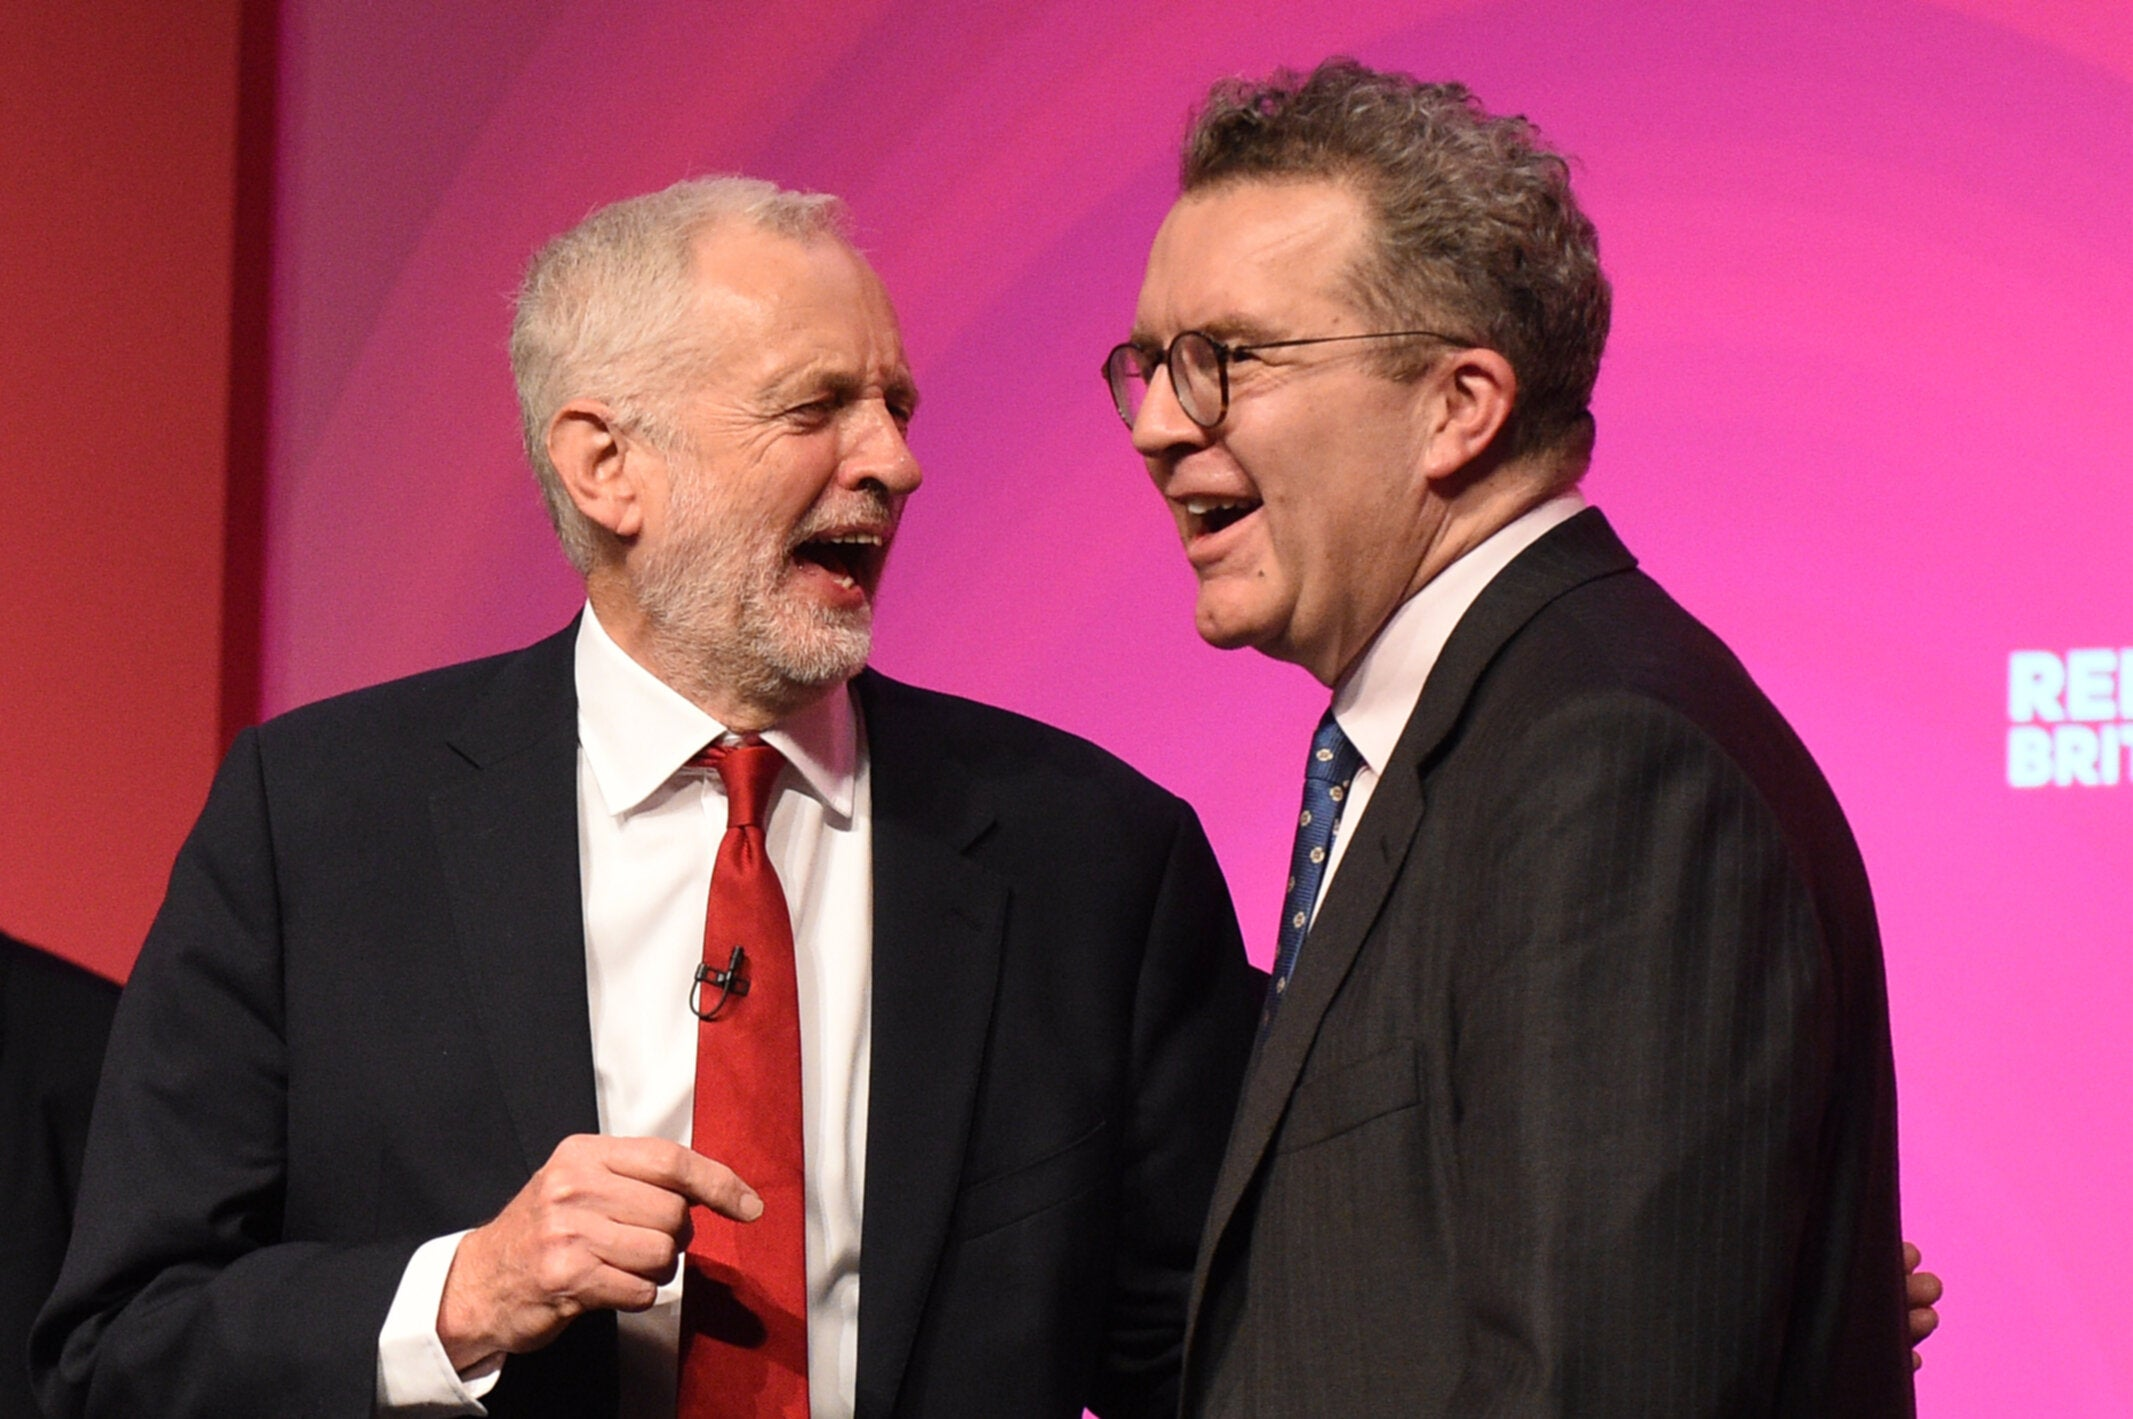 Labour's democratic socialists have nothing to fear from debate with internal rivals